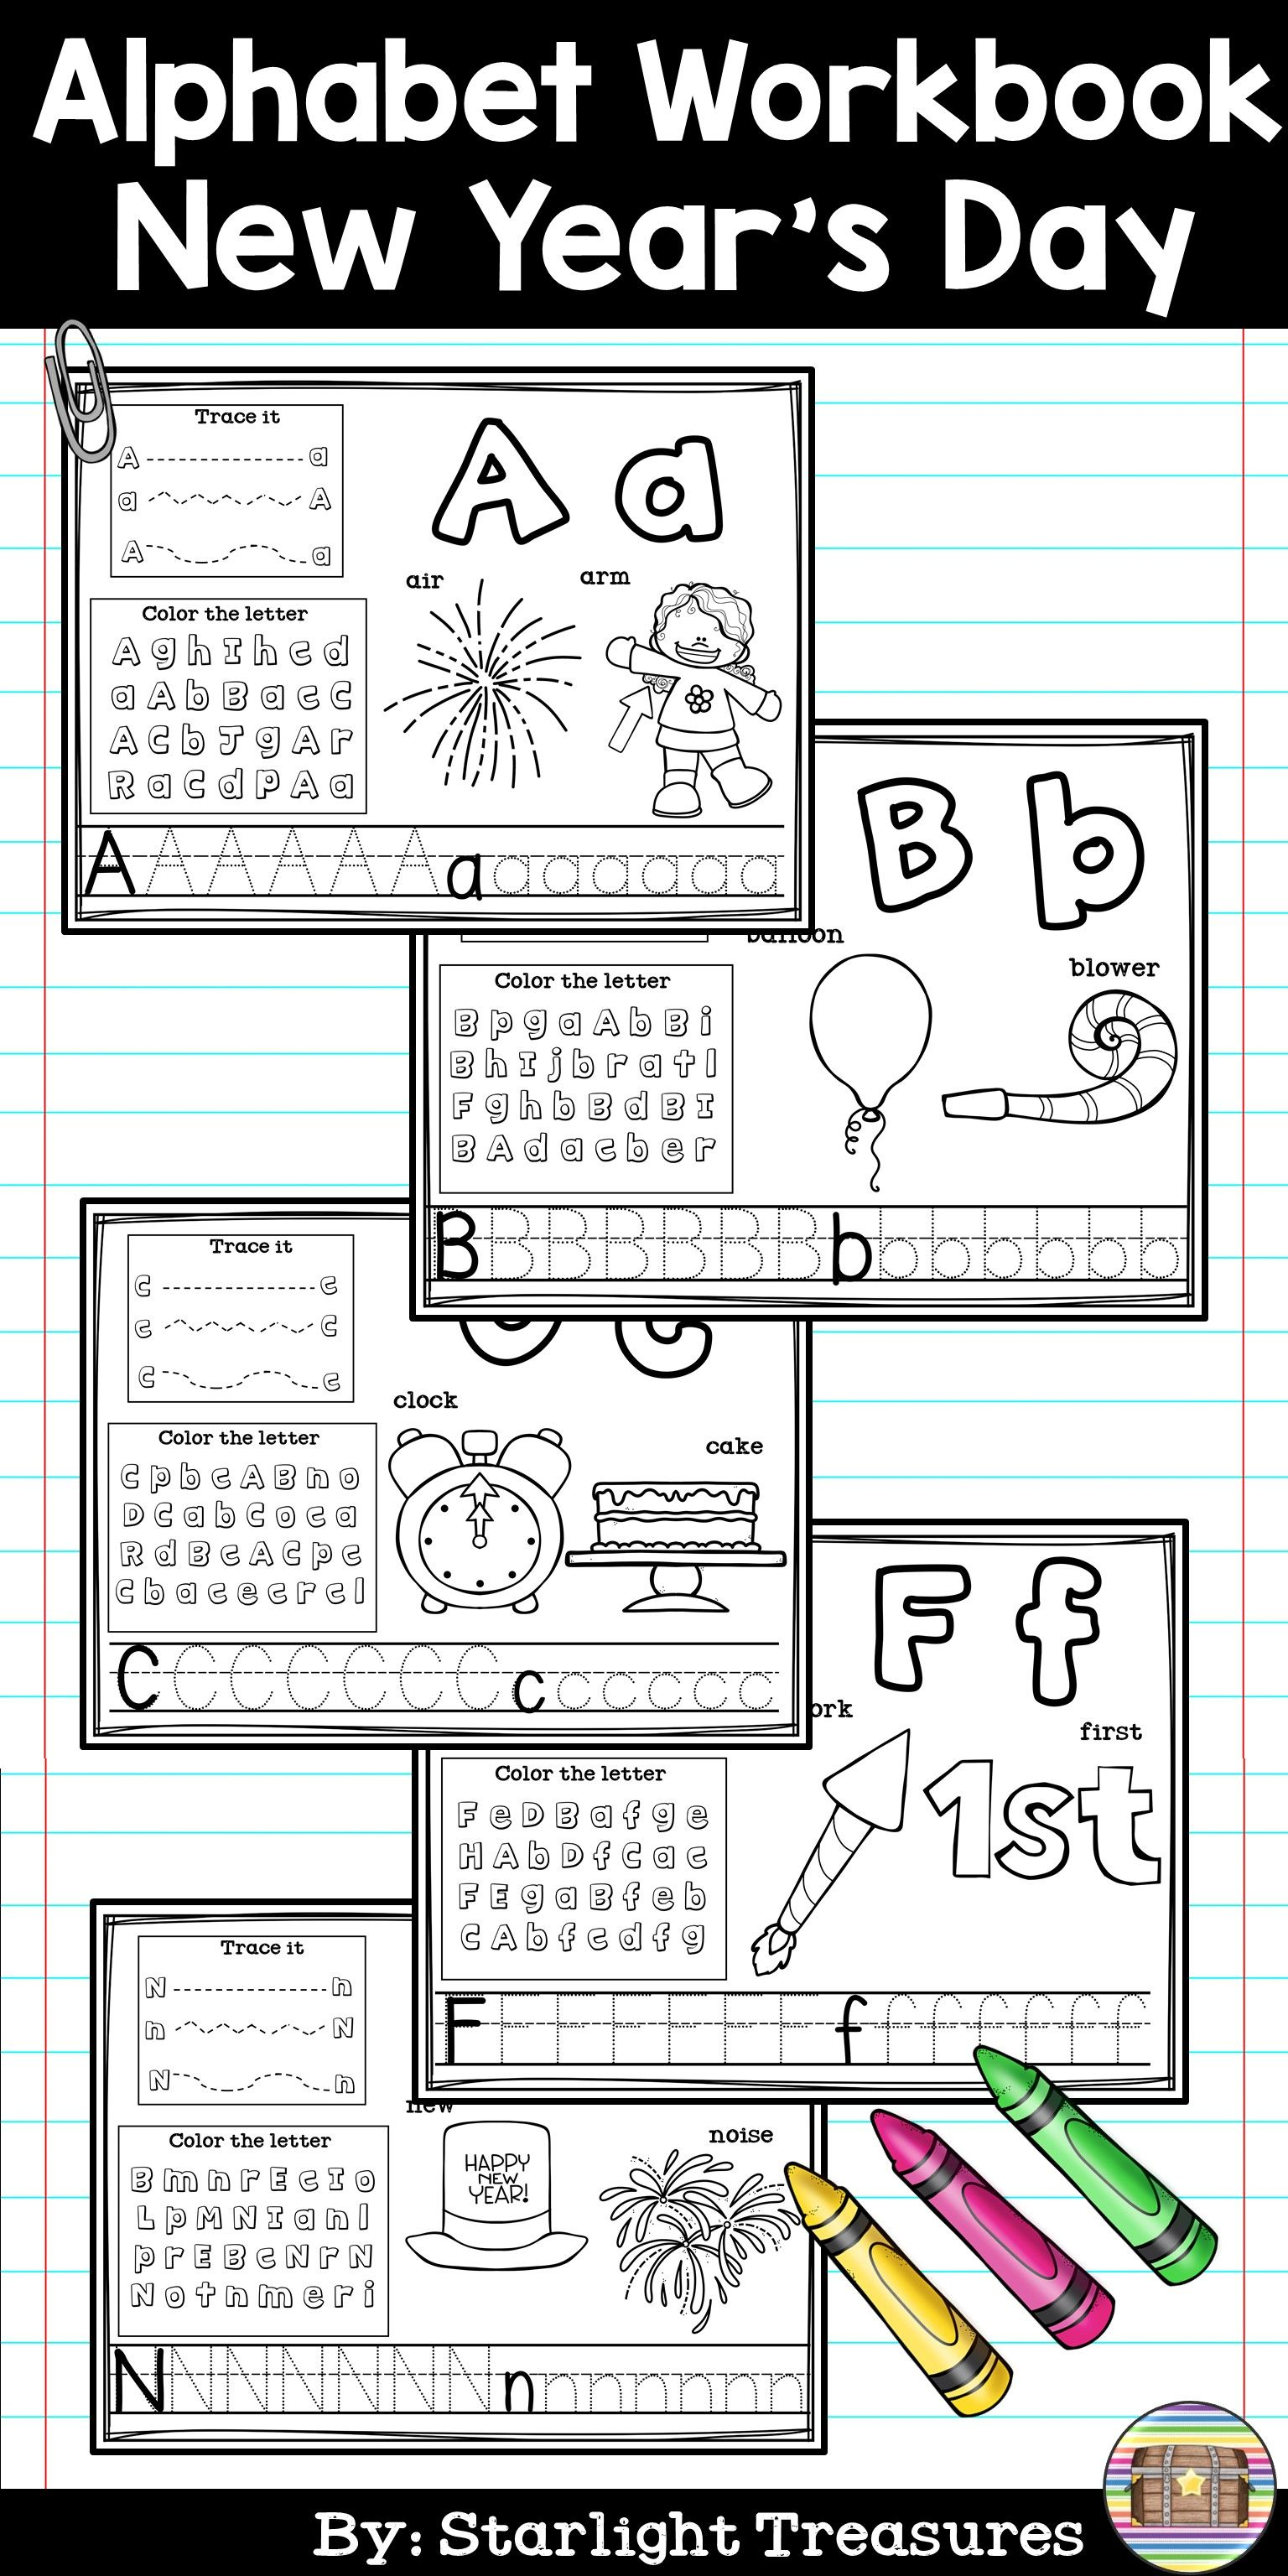 Alphabet Workbook Worksheets A Z New Year S Day